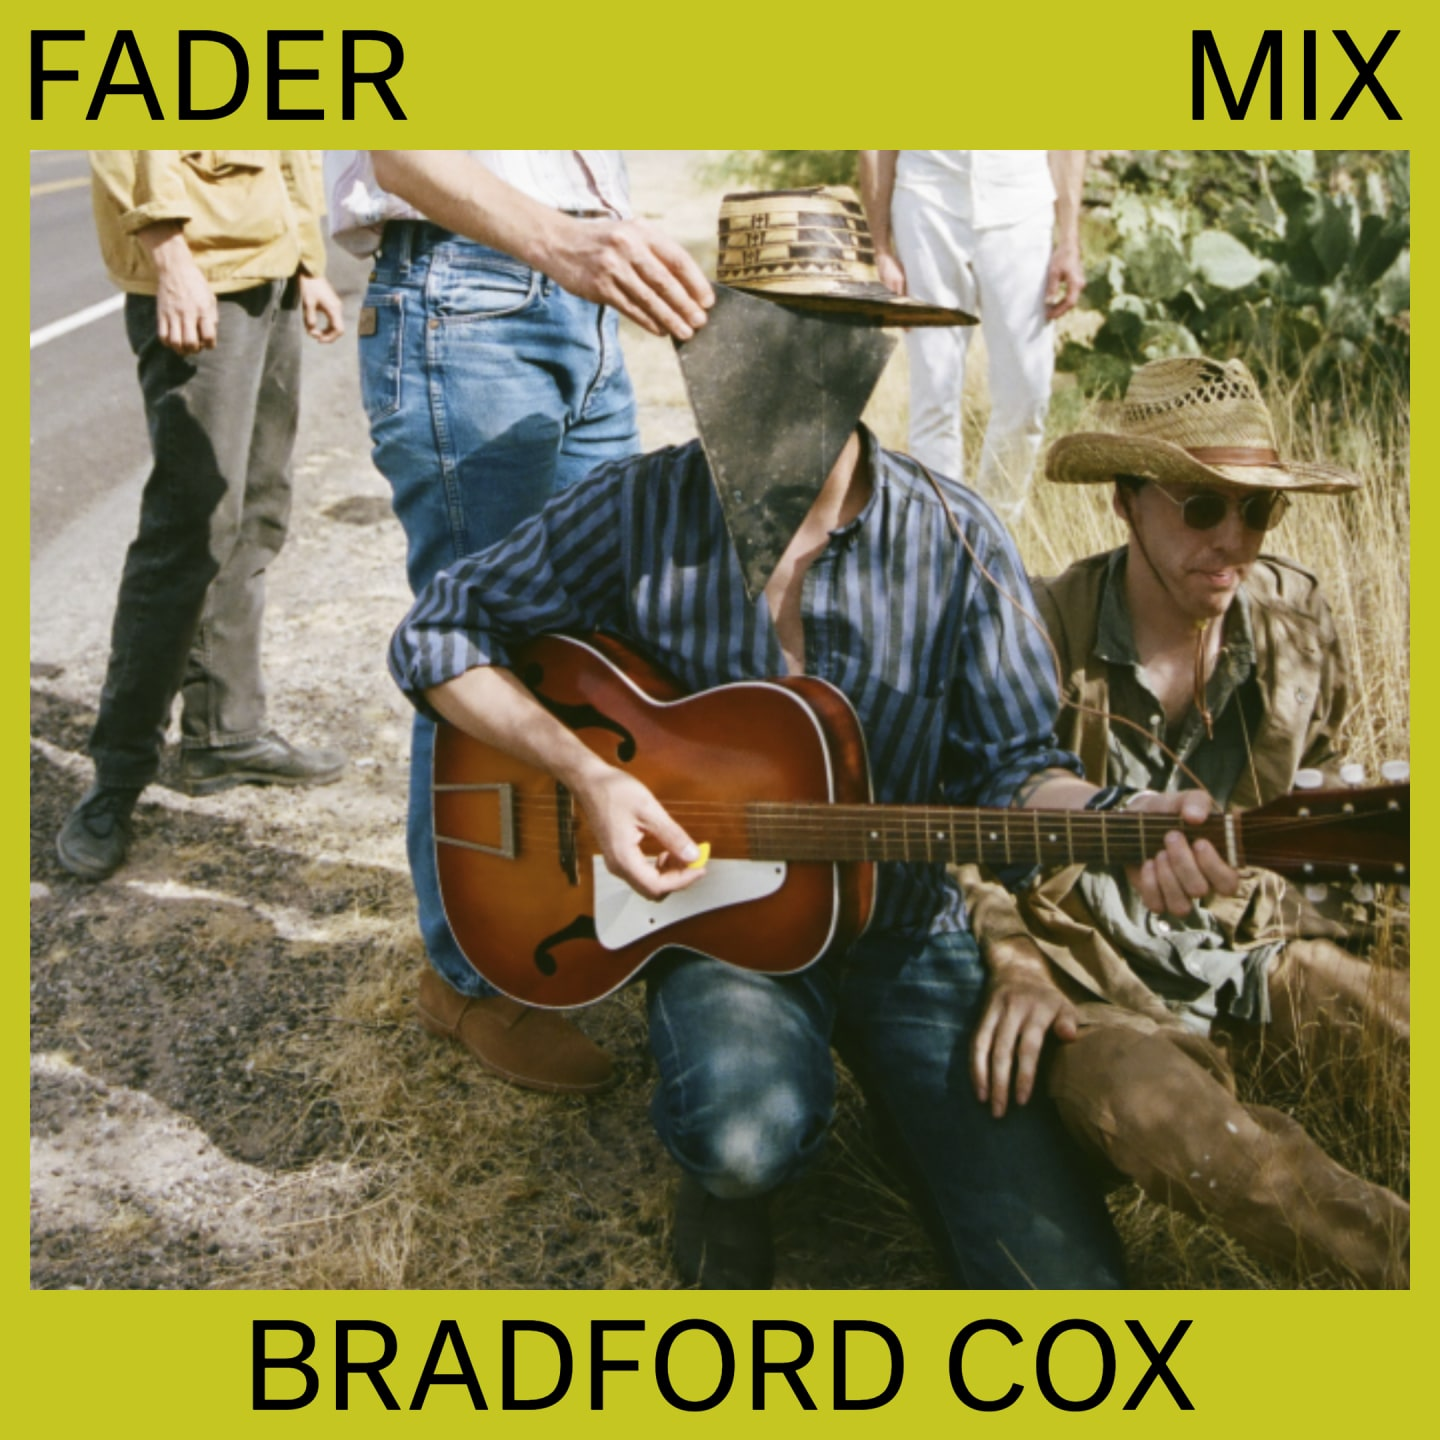 Listen to a new FADER Mix by Bradford Cox